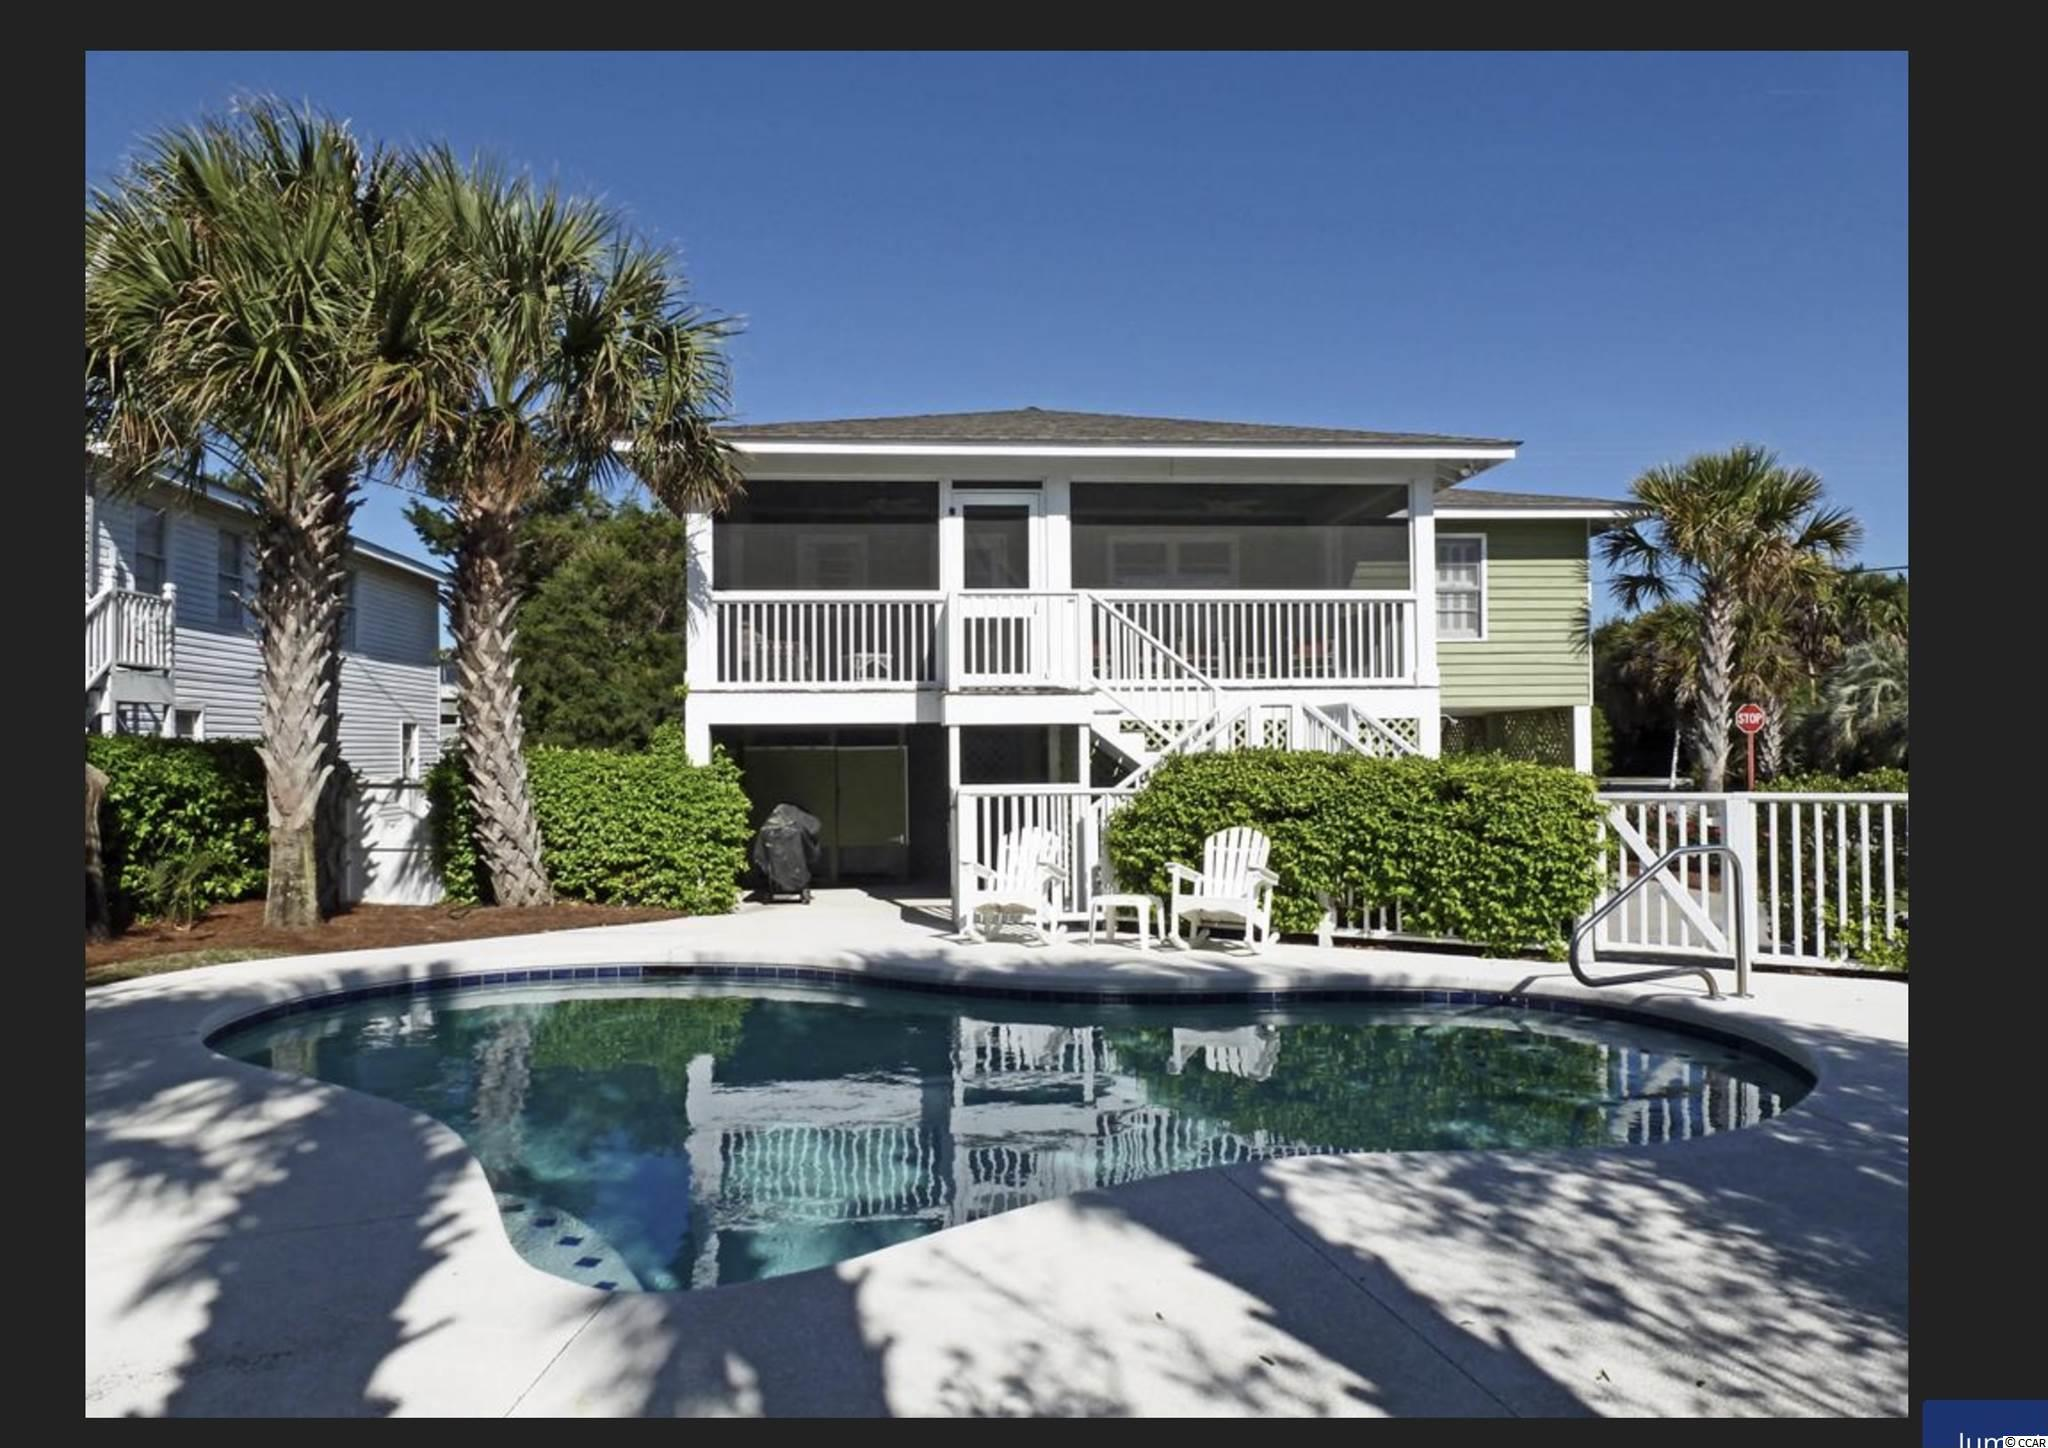 Charming beach cottage in Litchfield.  Steps away from beach access.  Sit on back screened porch overlooking the pool and experience ocean breezes.  This cottage has old beach house charm but with refreshed and recent renovations.  New bedroom and full bath added on ground floor.  Along with laundry nook and internal stairwell.  Small boat landing is also steps away perfect for launching kayaks and johnboats.  Picnic table and outdoor shower downstairs with plenty of parking.